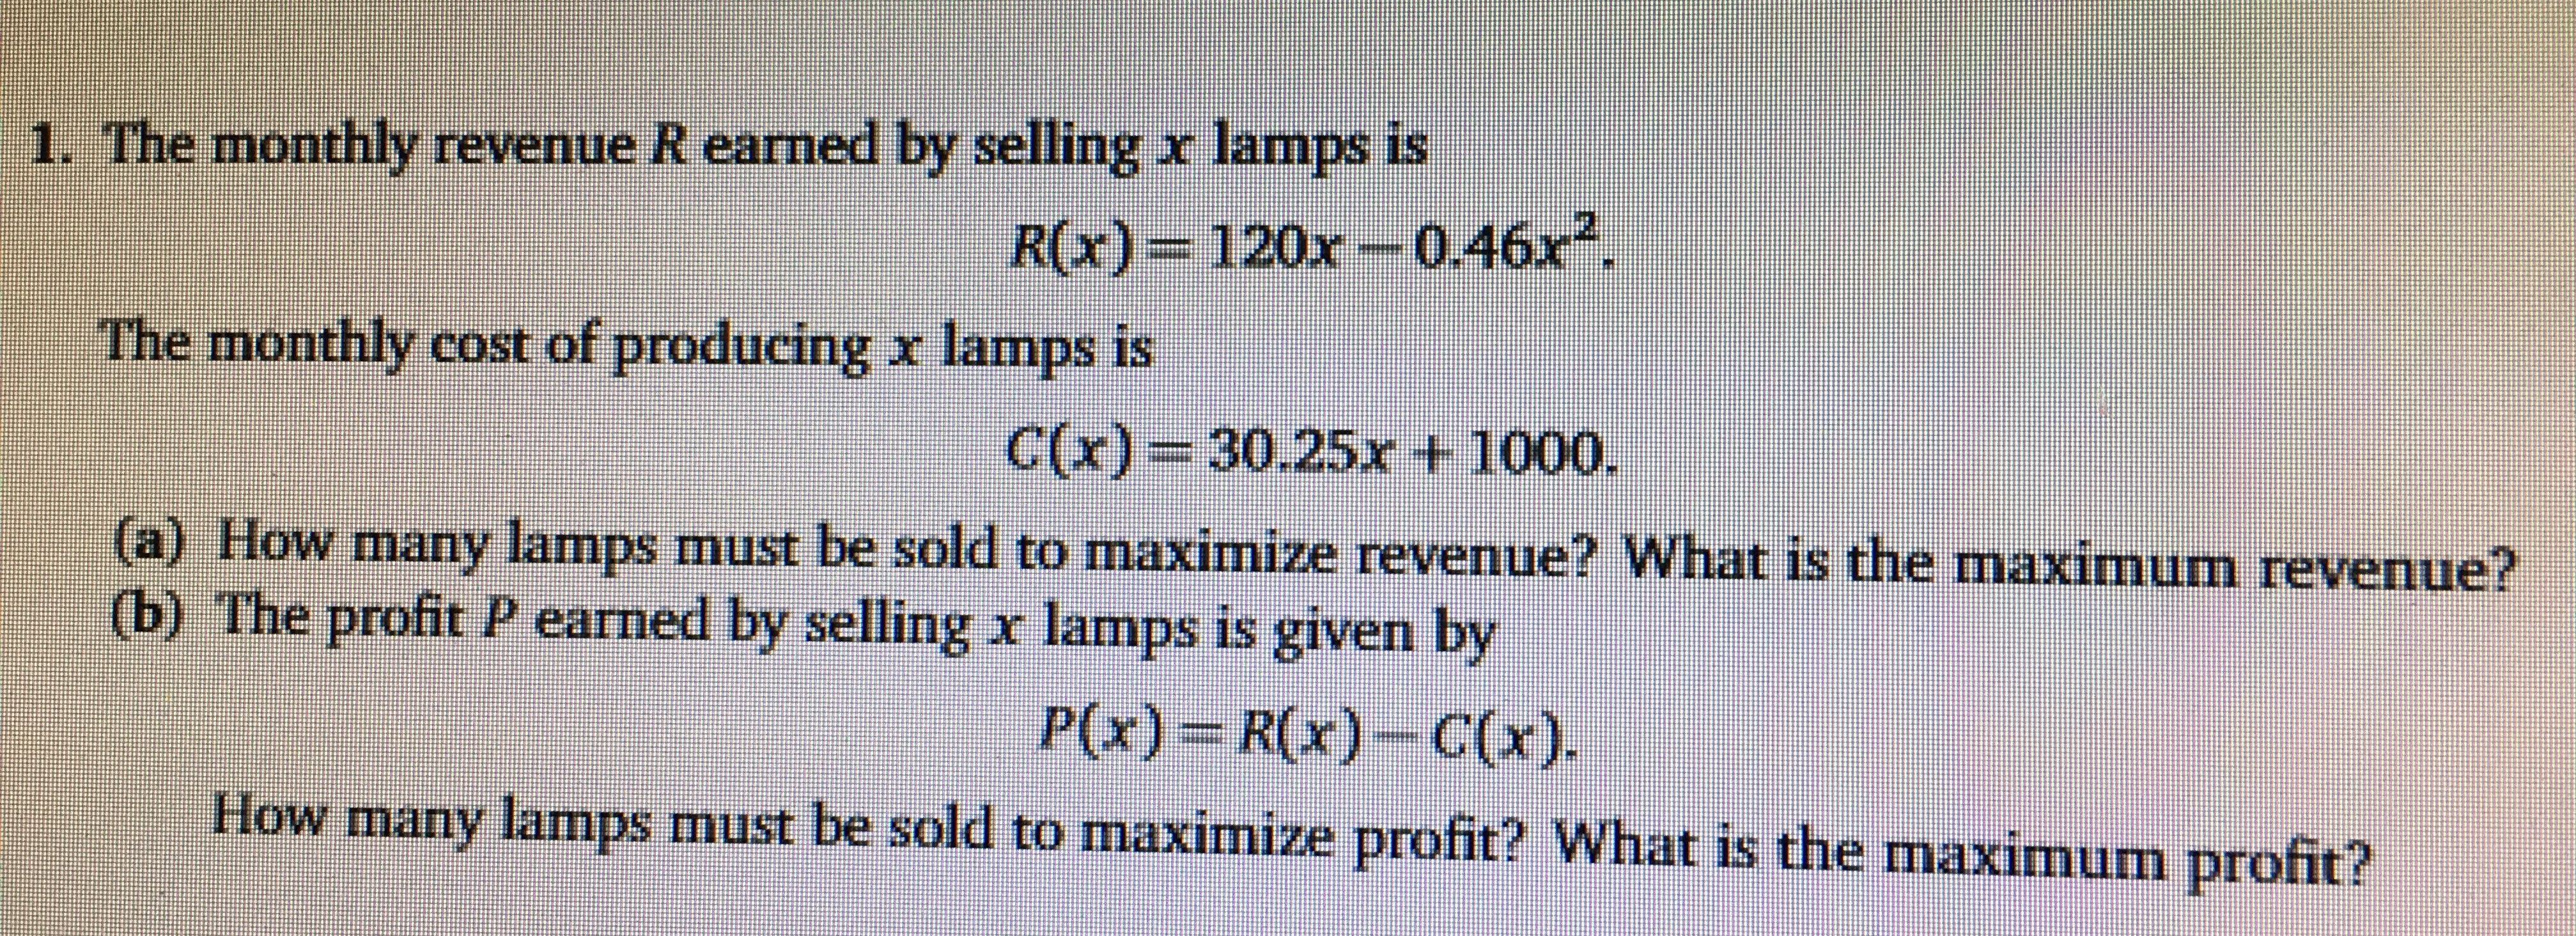 1. The monthly revenue R earned by selling x lamps is R(x)= 120x-0.46x The monthly cost of producing x lamps is C(x) 30.25r t 1000. a) How marny lamps must be sold to maximize revenue? What is the maximum revenue? (b) The profit P earned by selling x lamps is given by P(x) R(x)-C(x) How many lamnps must be sold to maximize profit? What is the maximum profit?